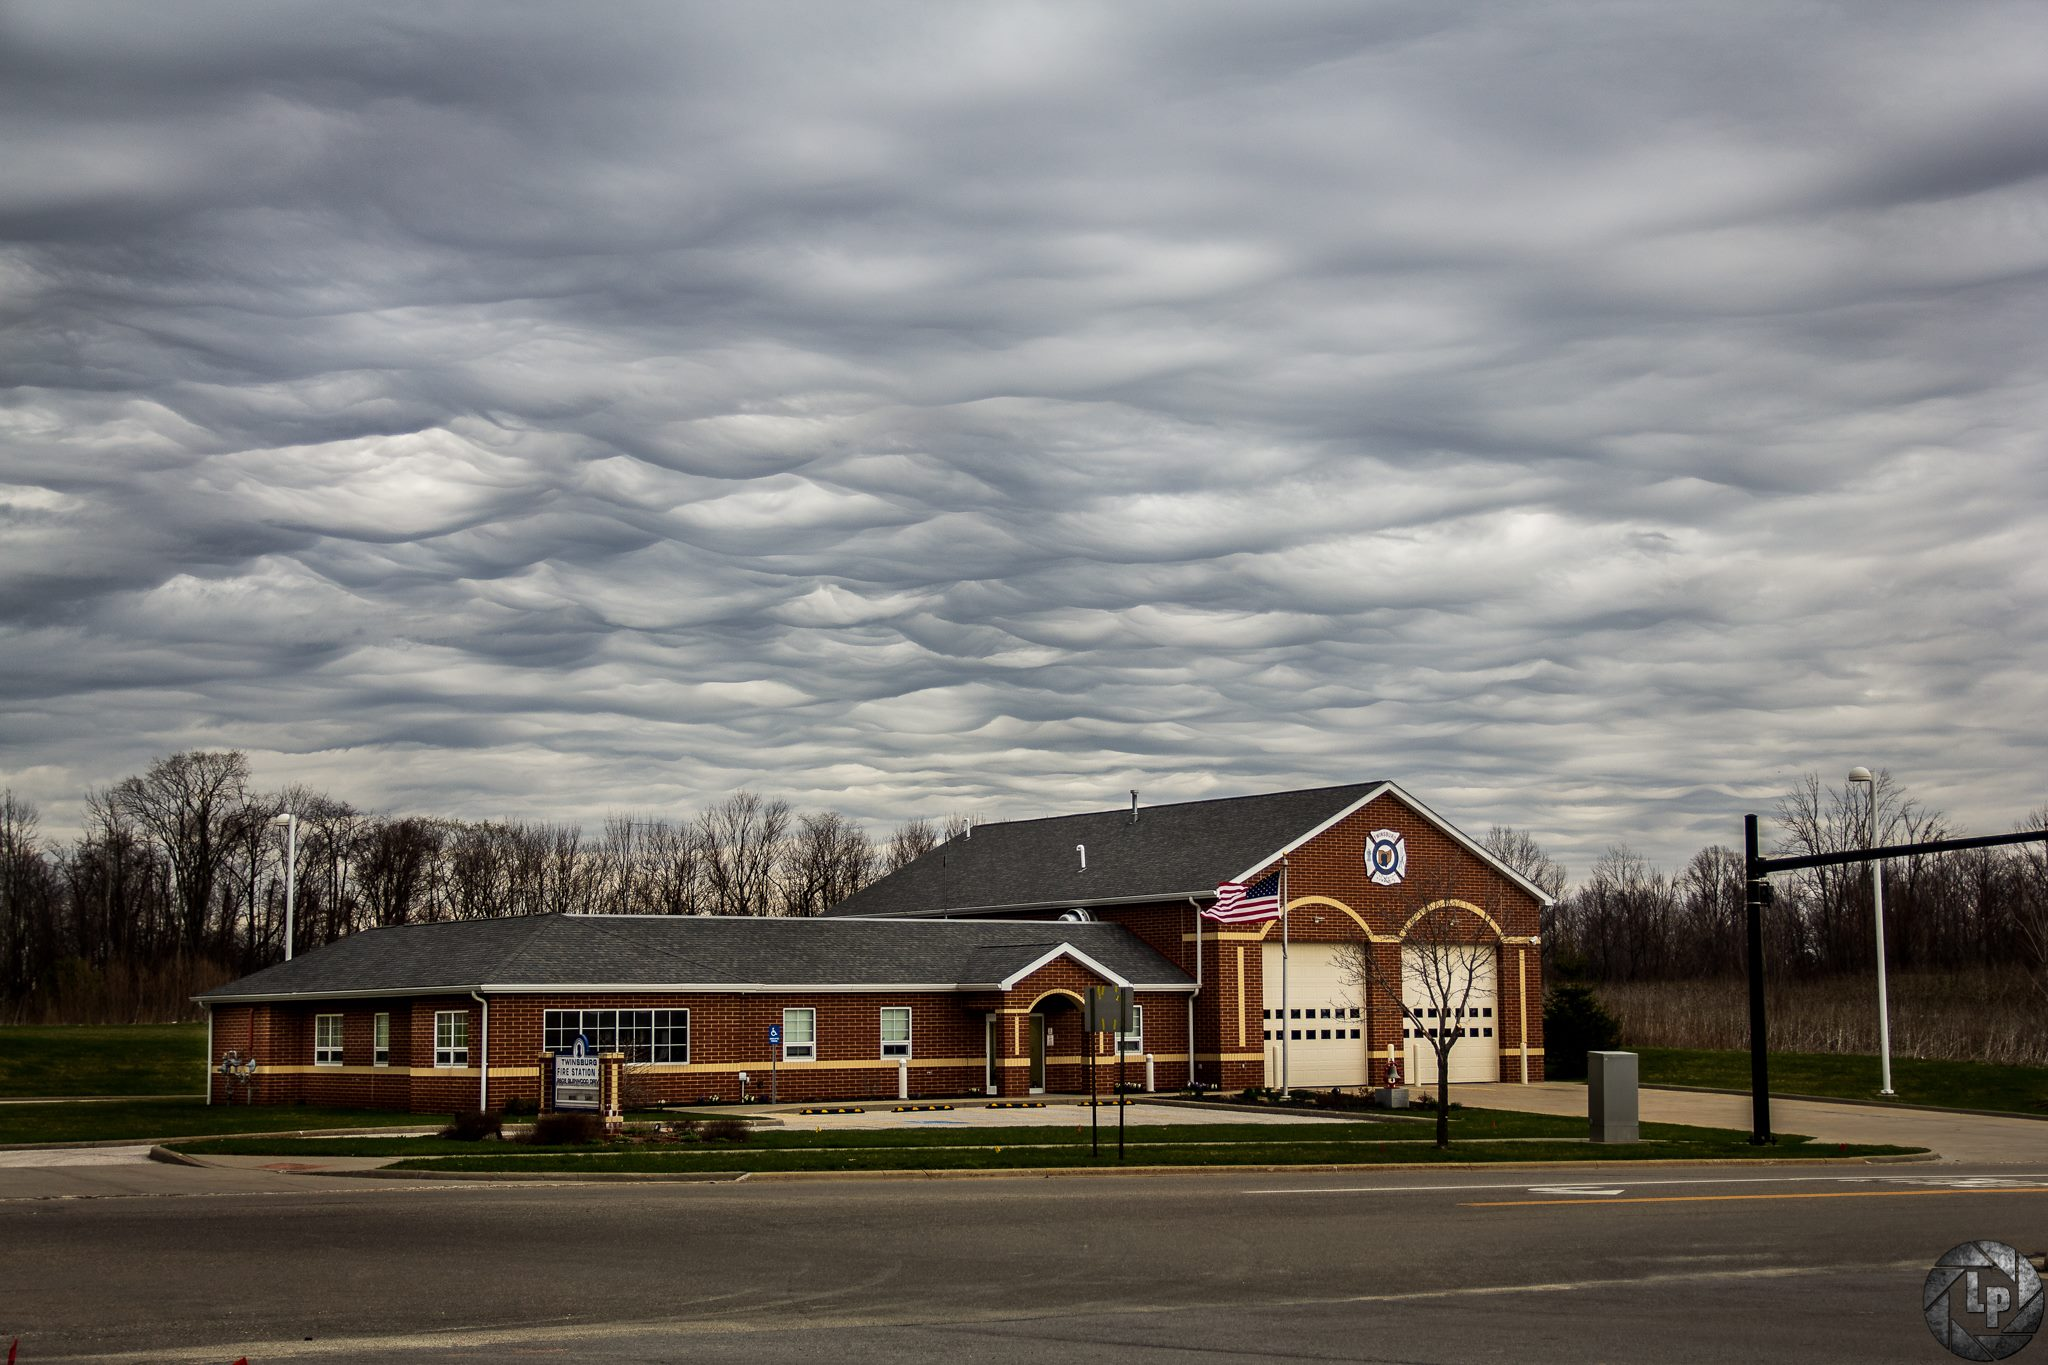 Waves In The Twinsburg Clouds